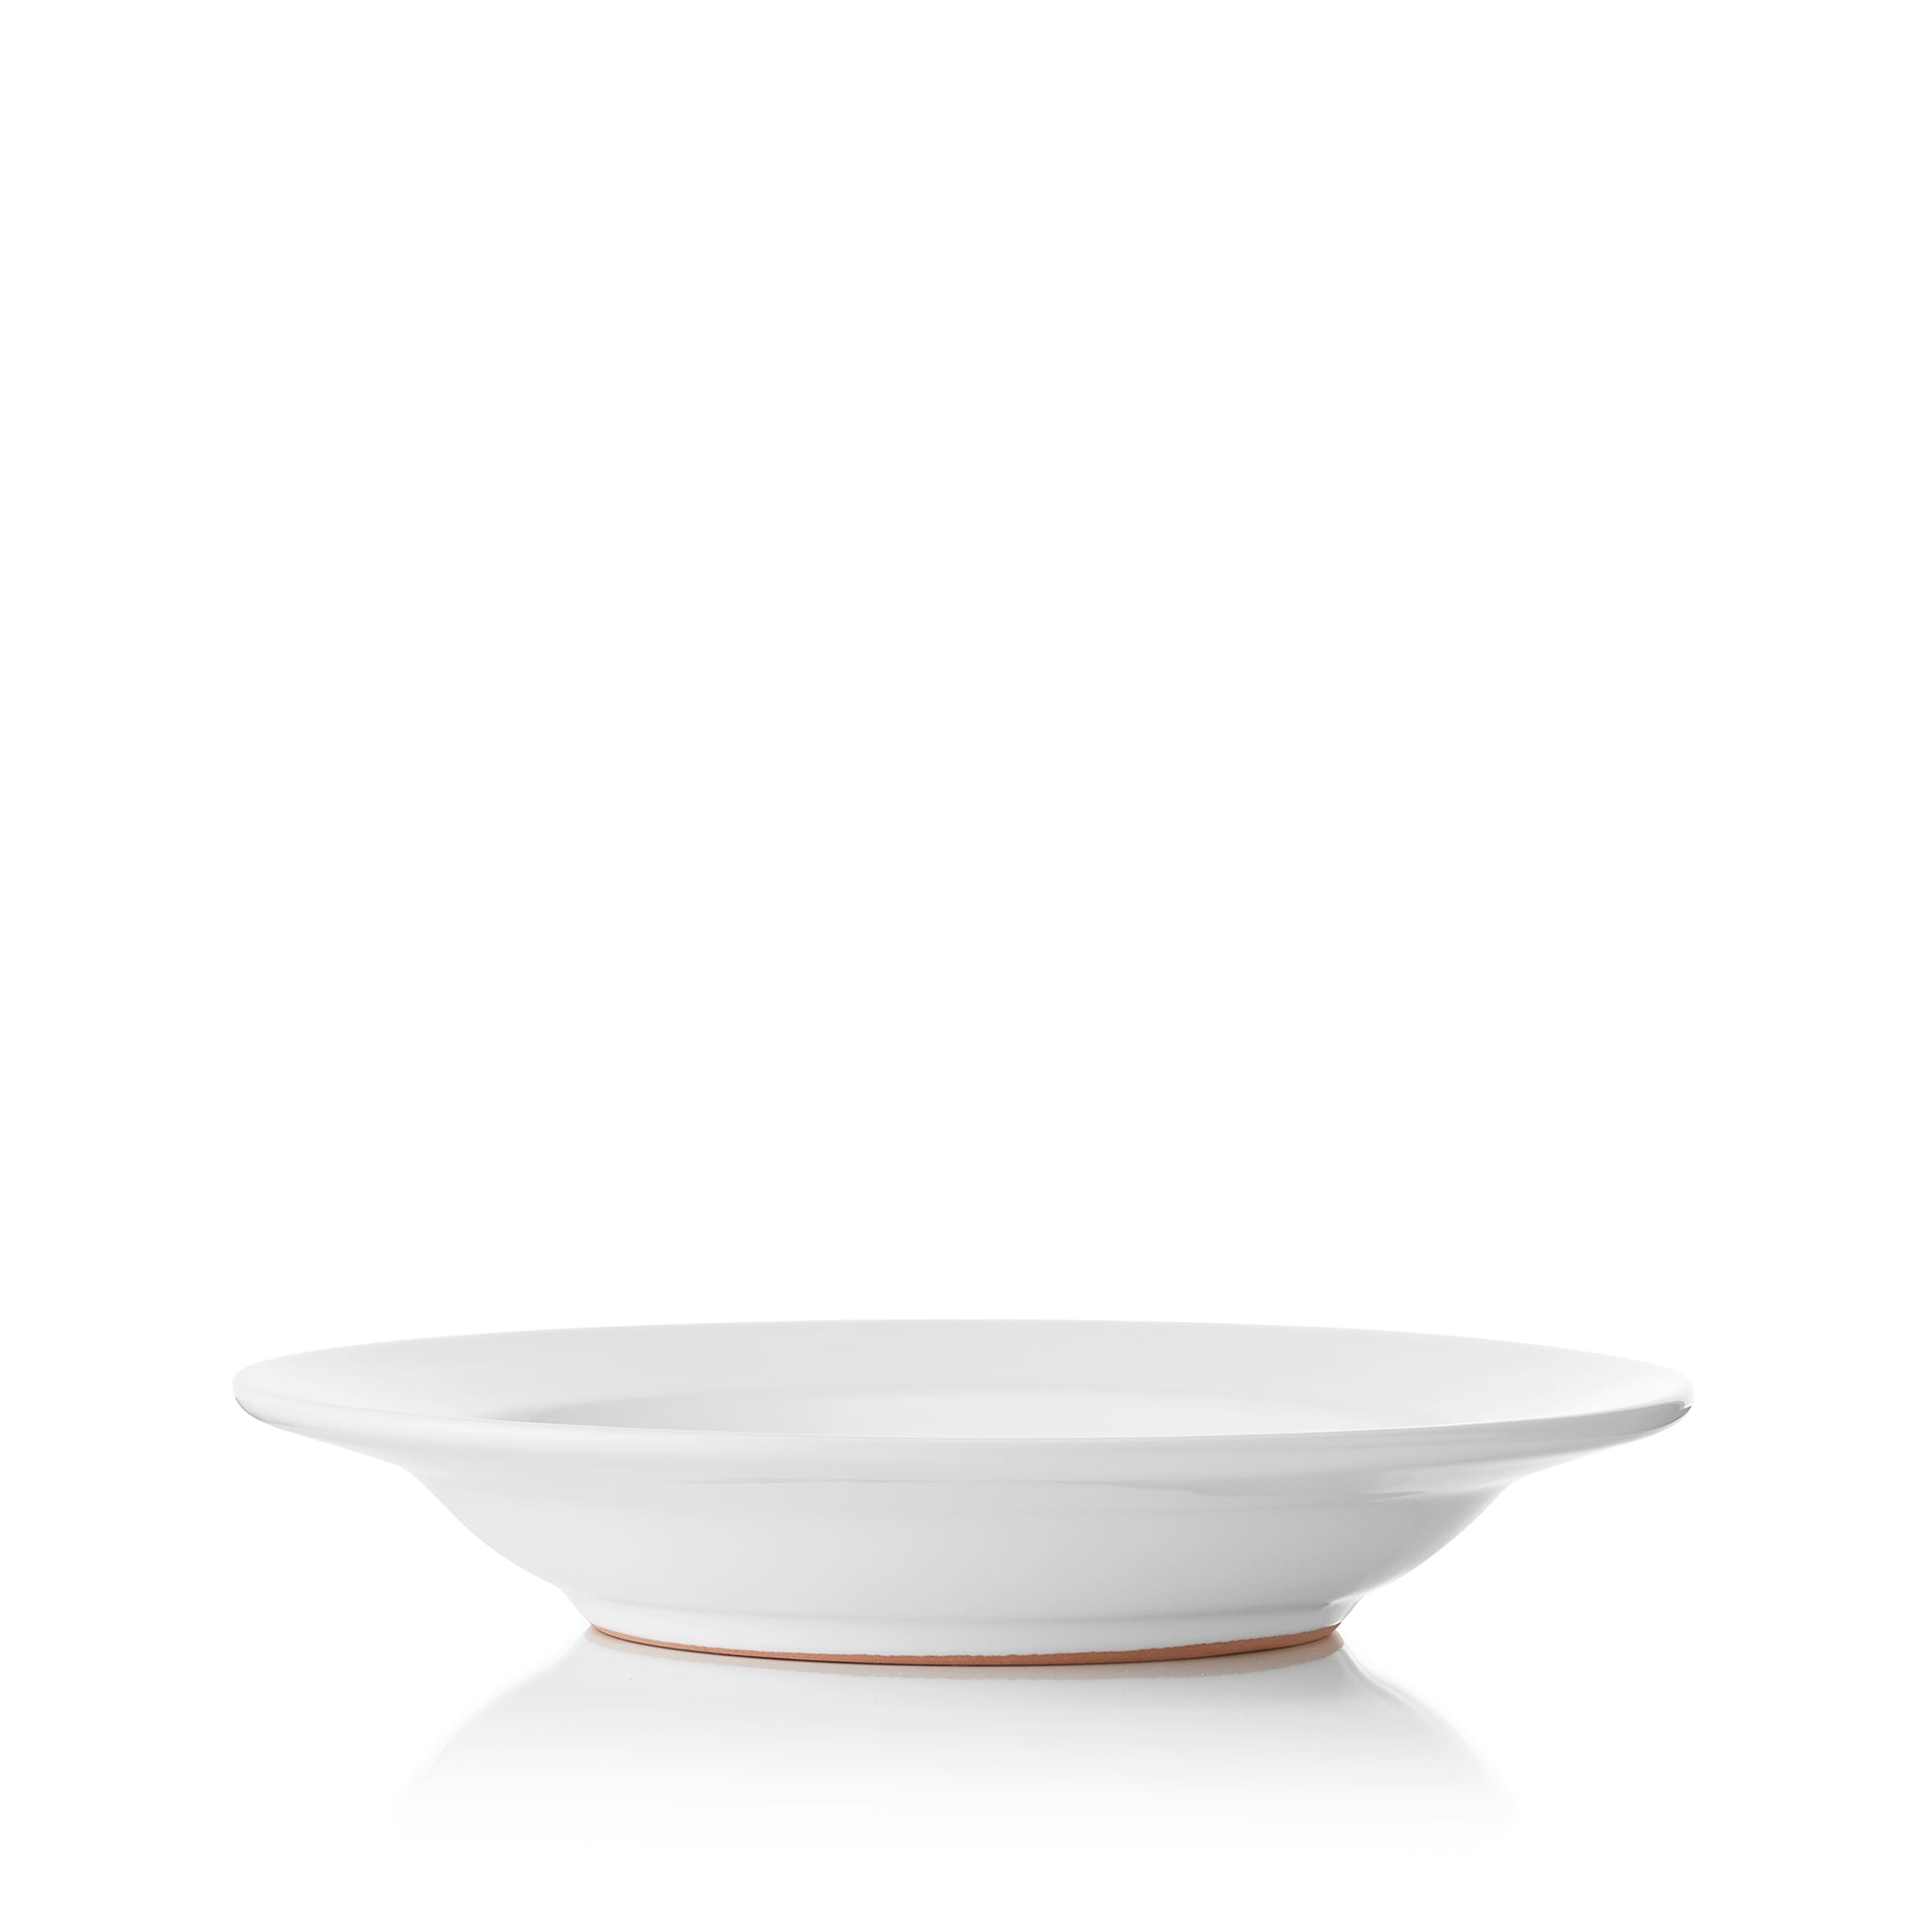 S&B Plain White Rimmed Ceramic Pasta Bowl, 24cm